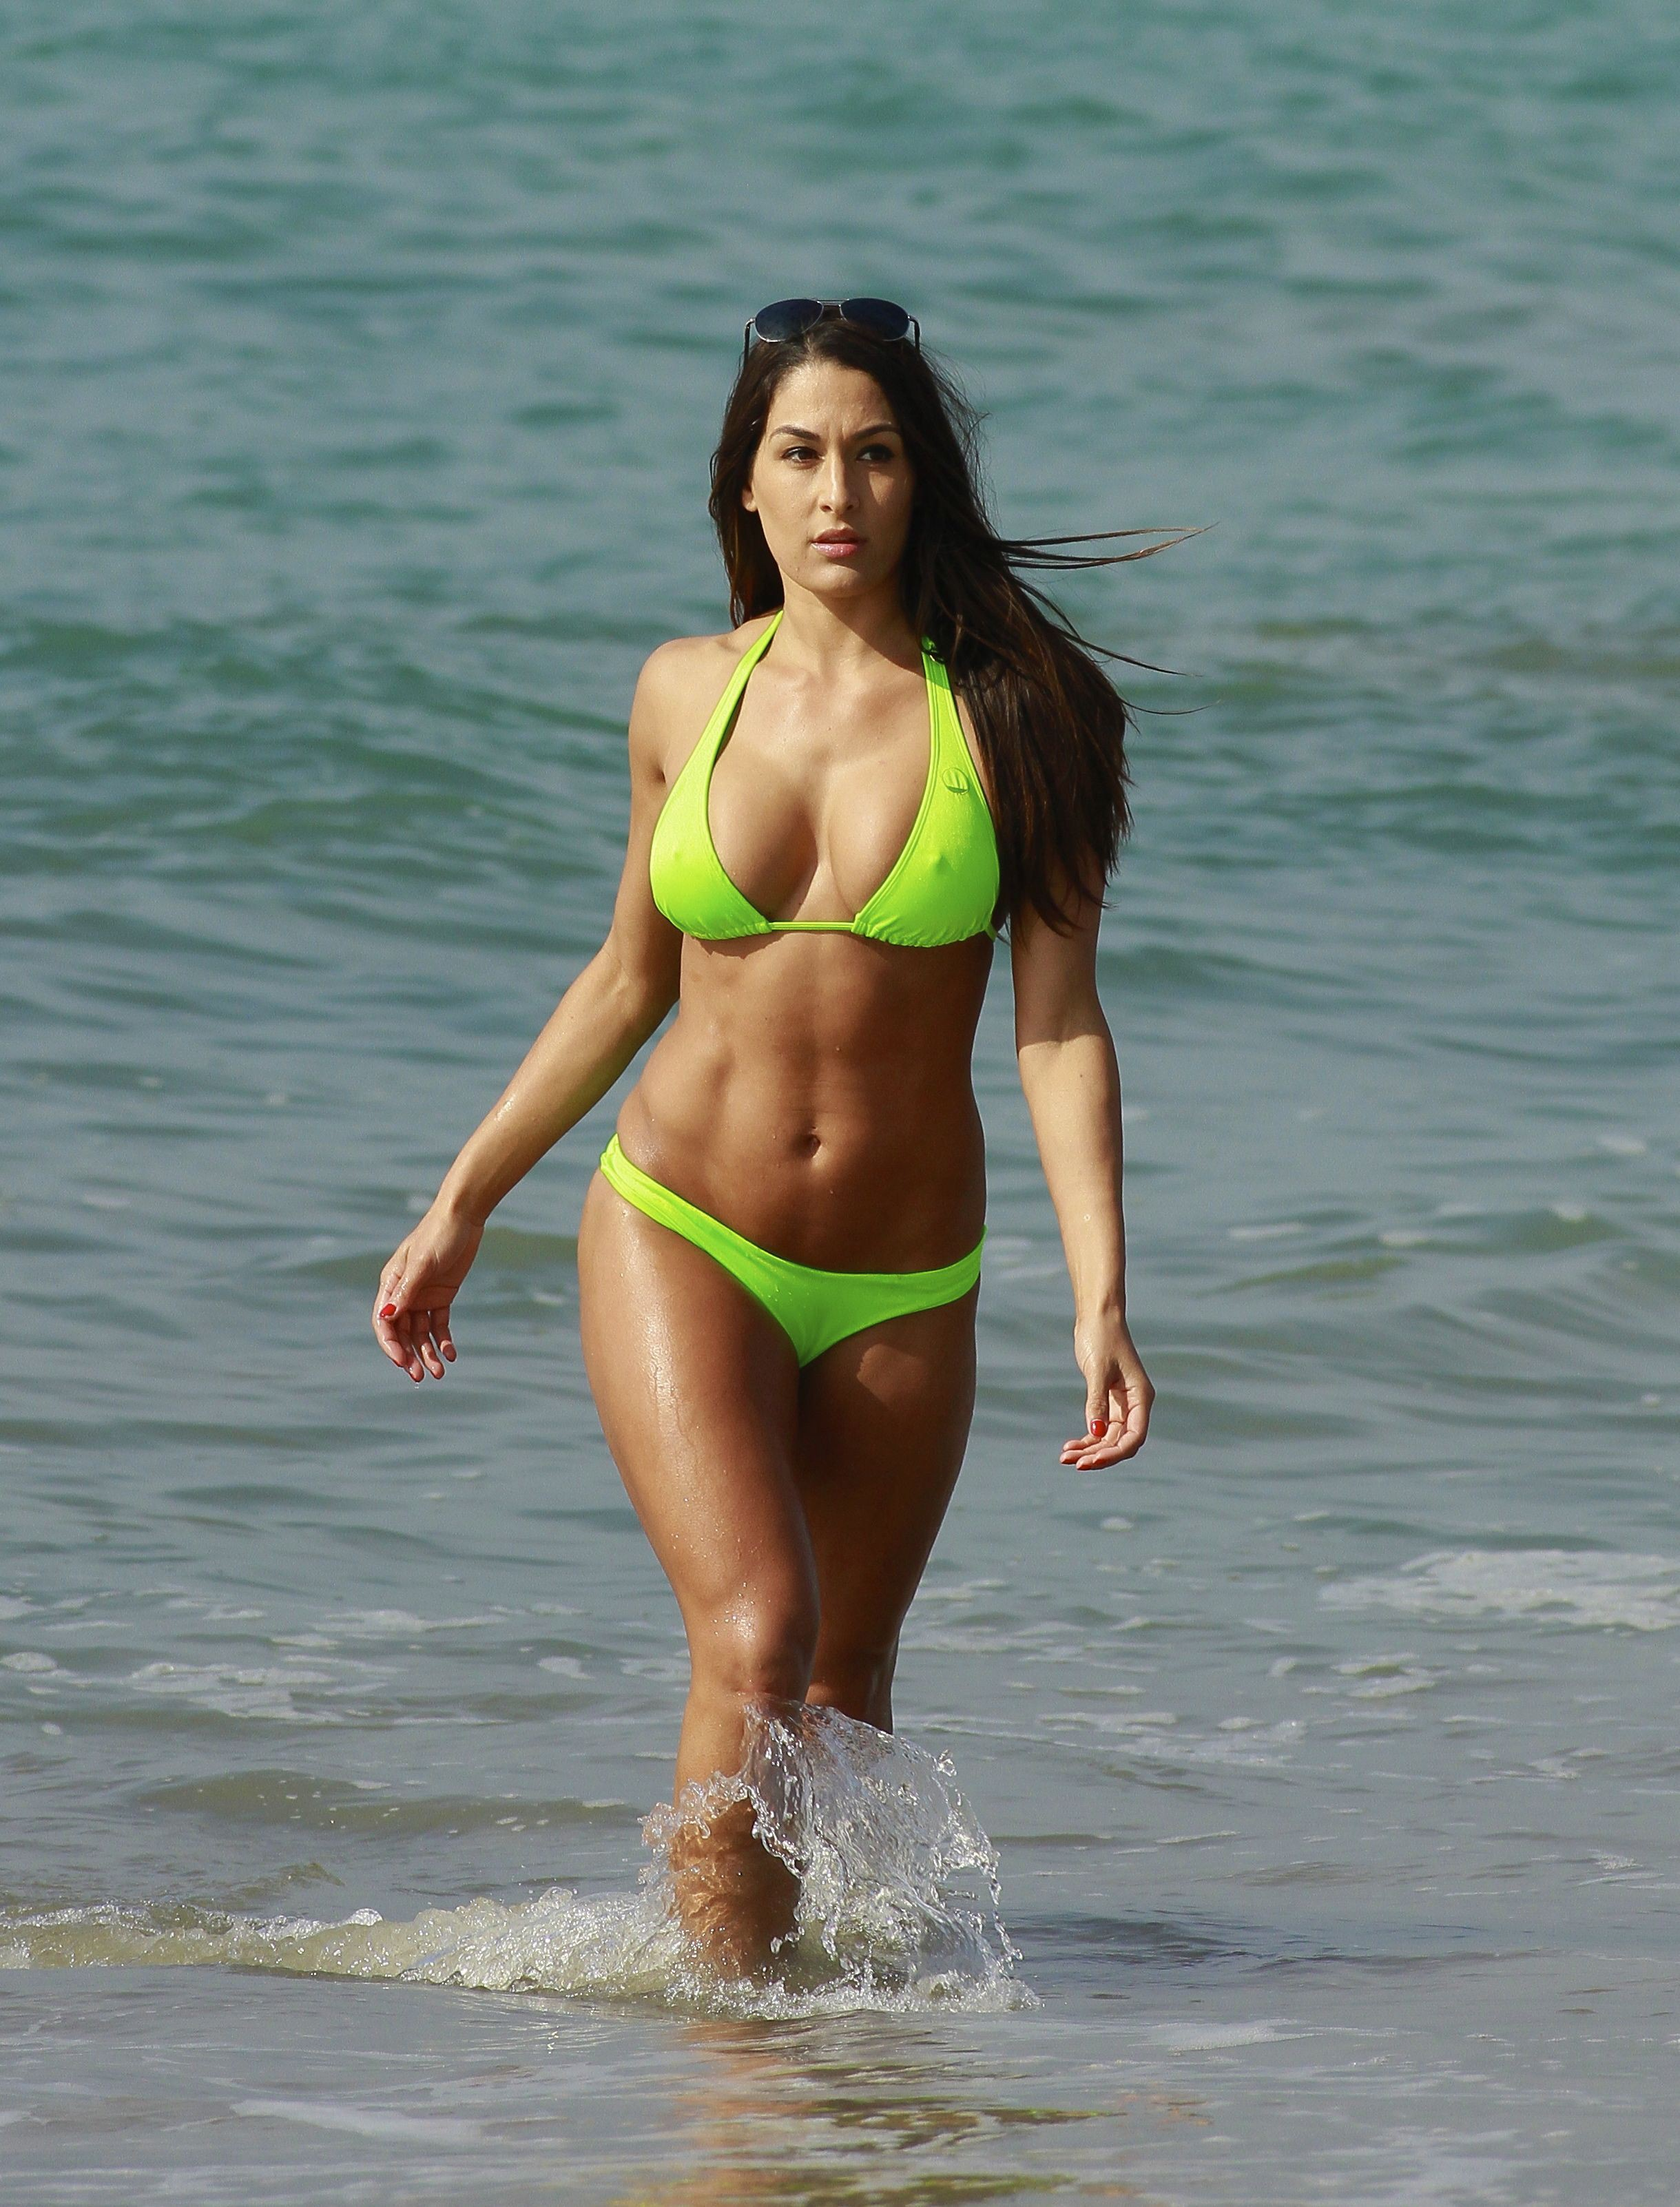 17+ images about nikki bella on Pinterest | Sexy, Total divas and Health and fitness